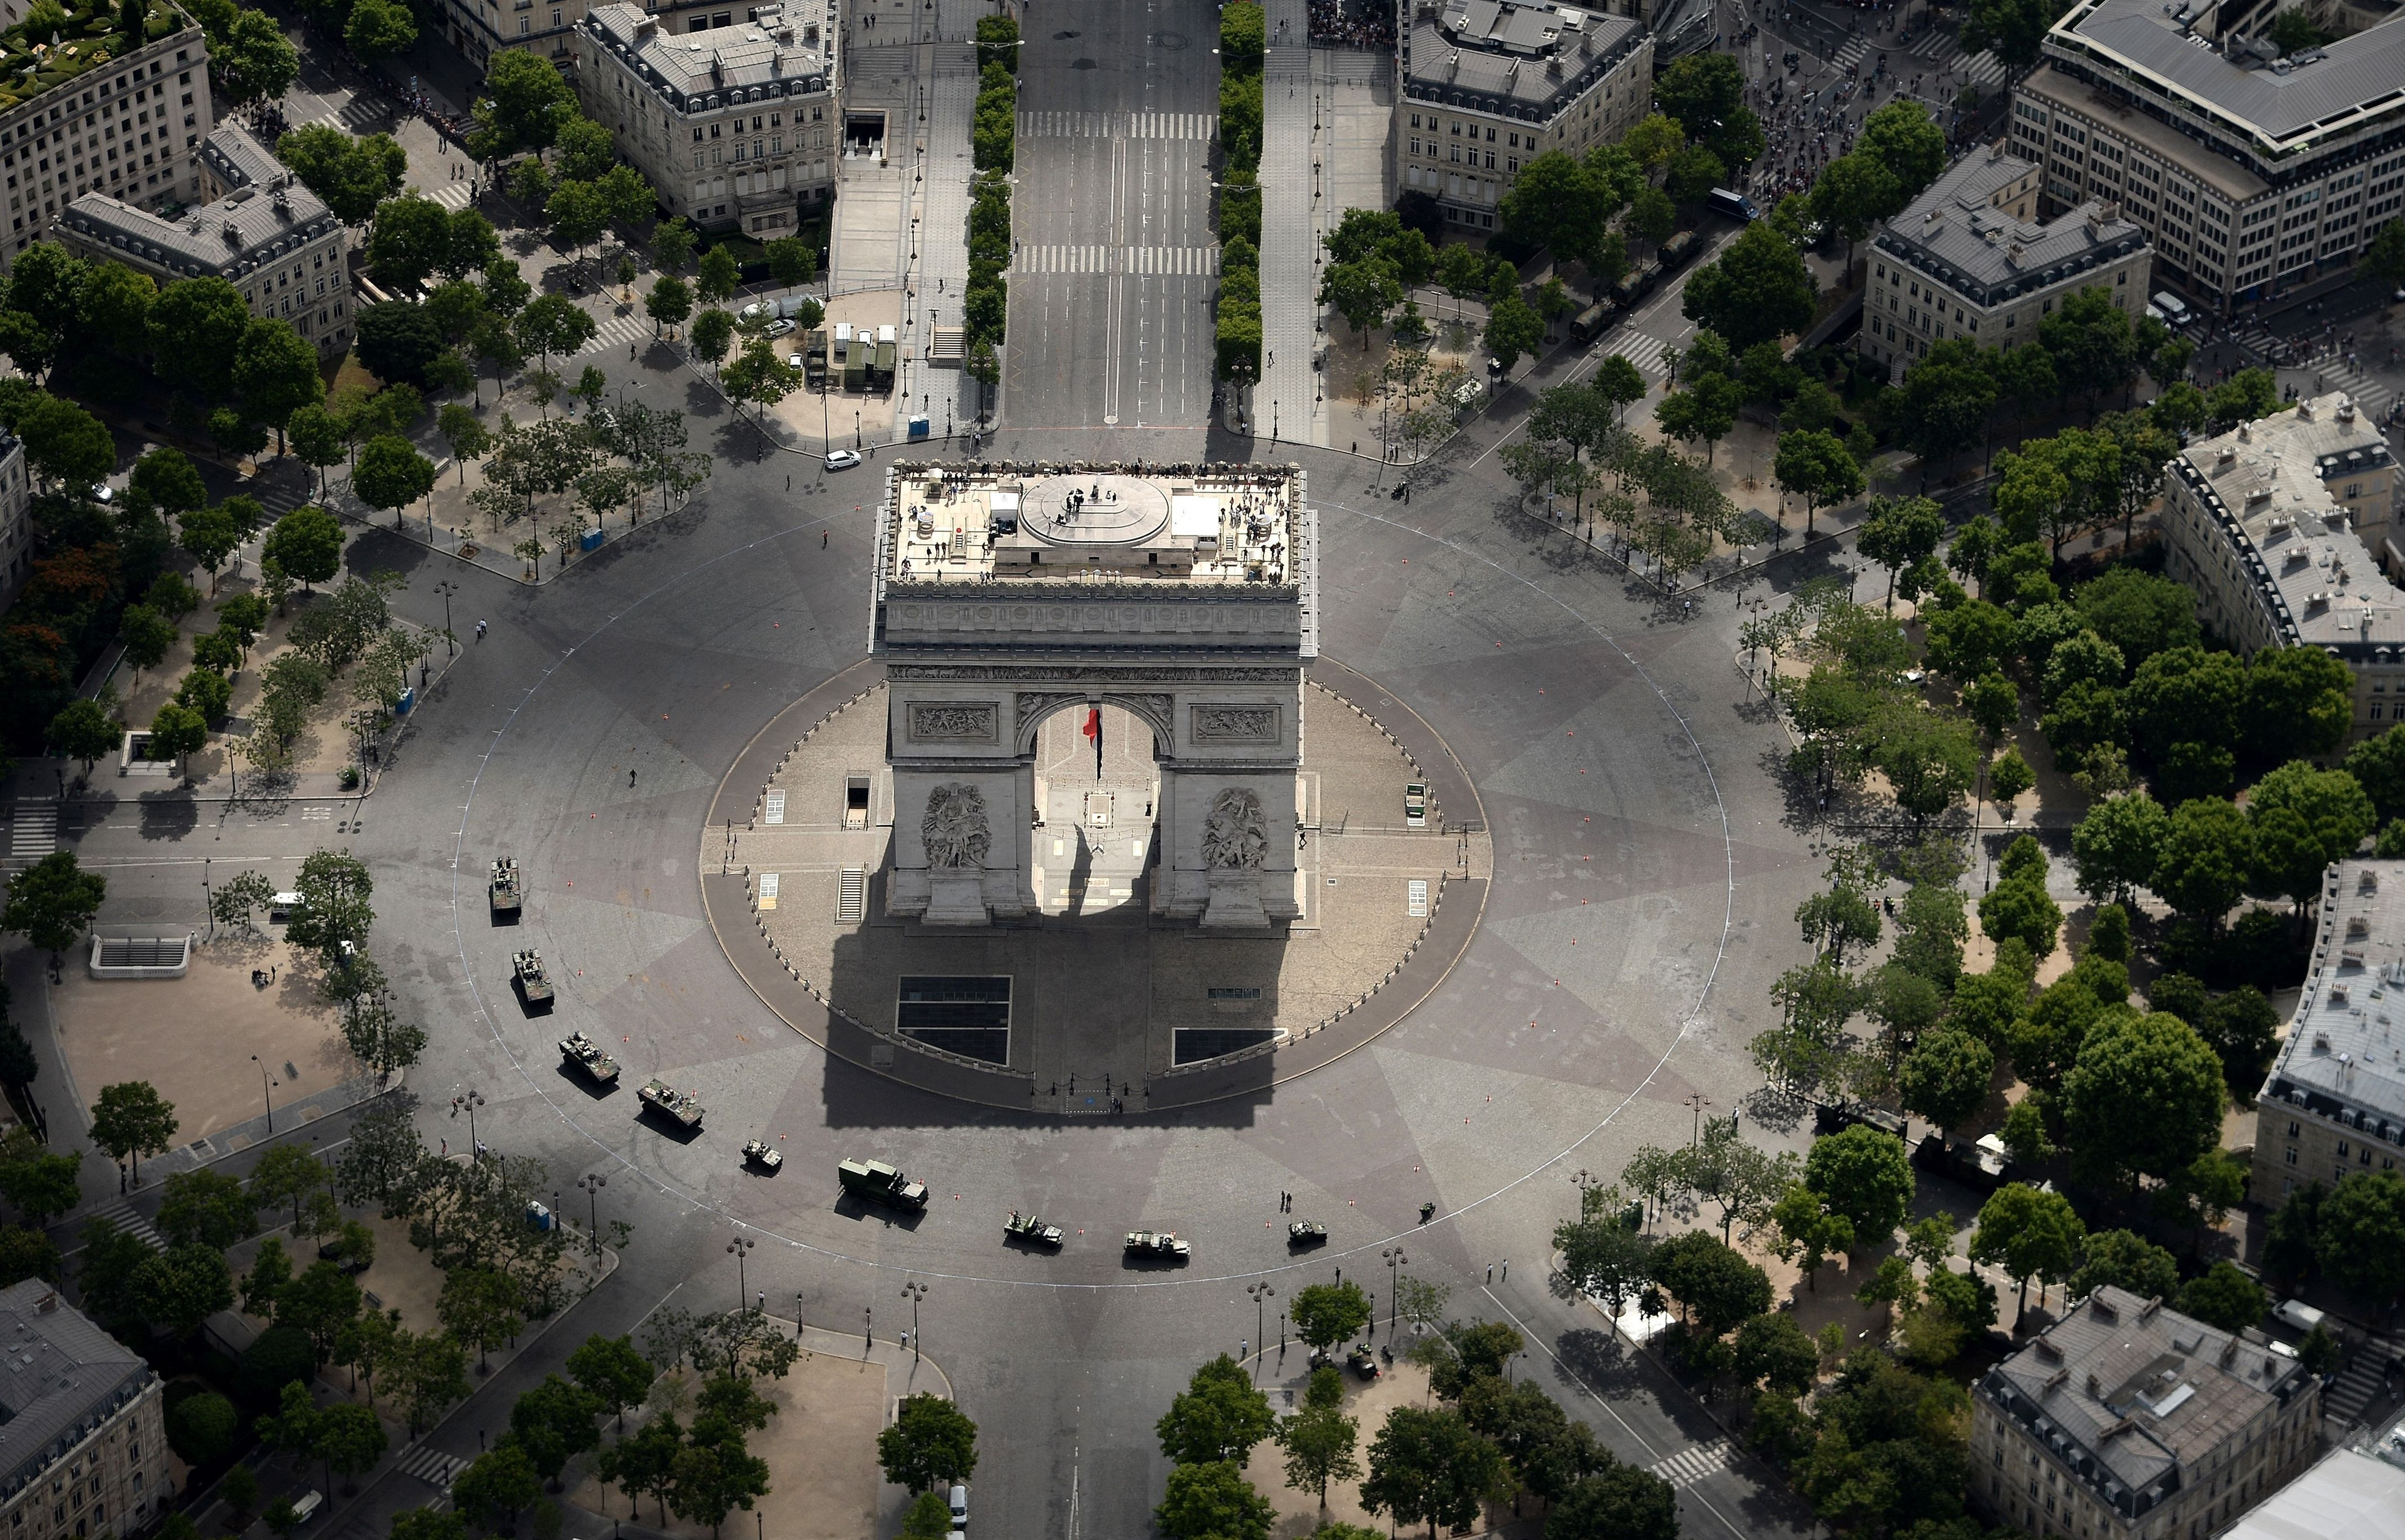 Military trucks circle the Champs Elysées after the 2015 terrorist attacks./ Getty